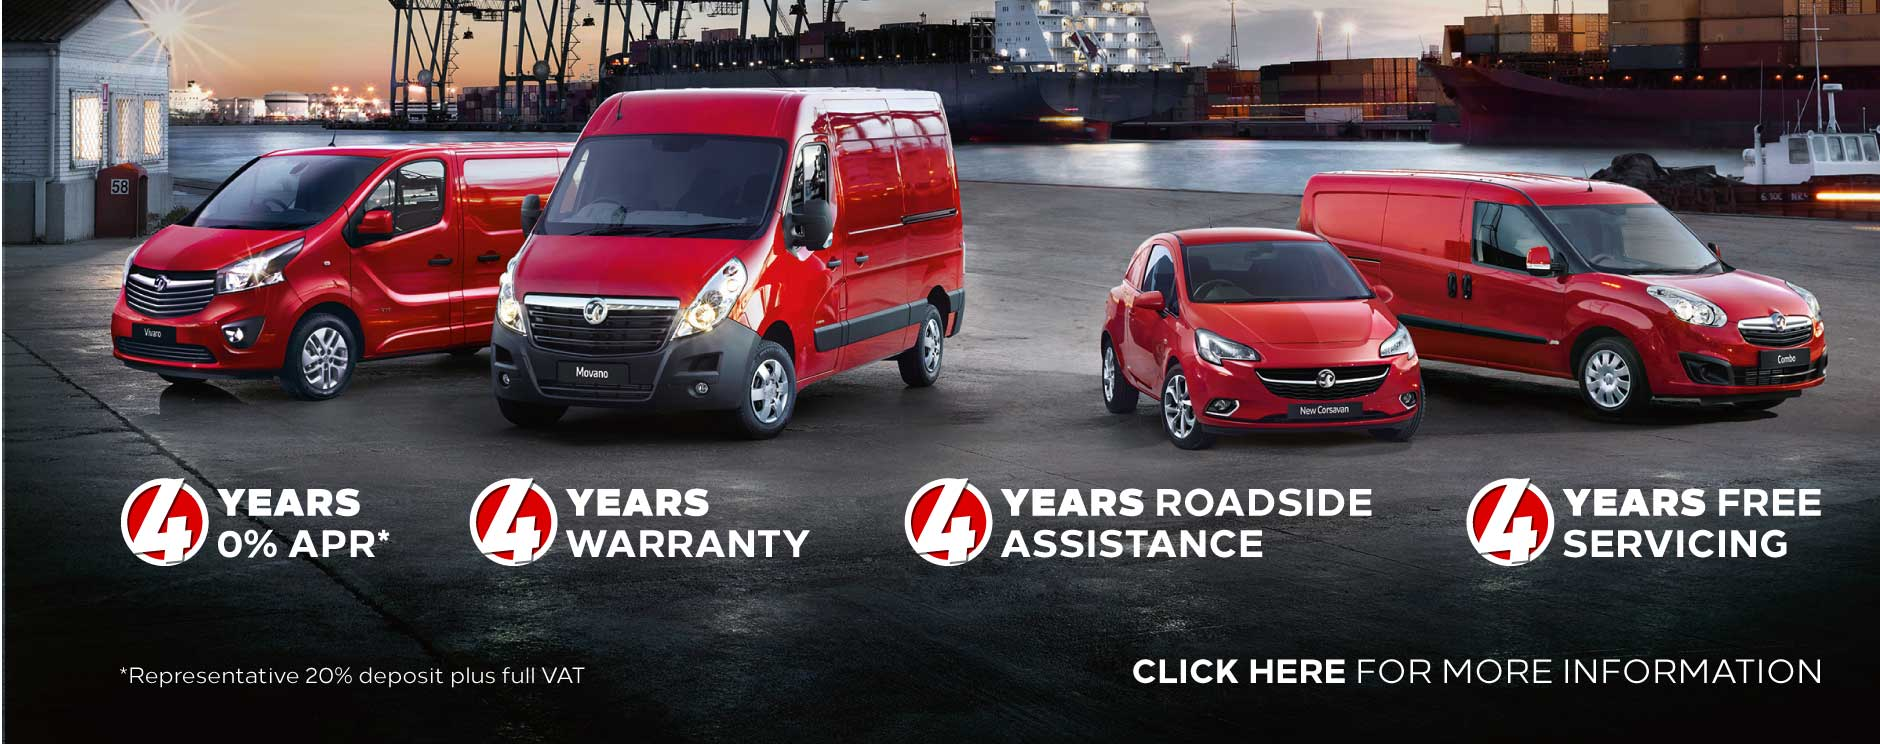 Vauxhall 4x4x4x4 Vans offer BB